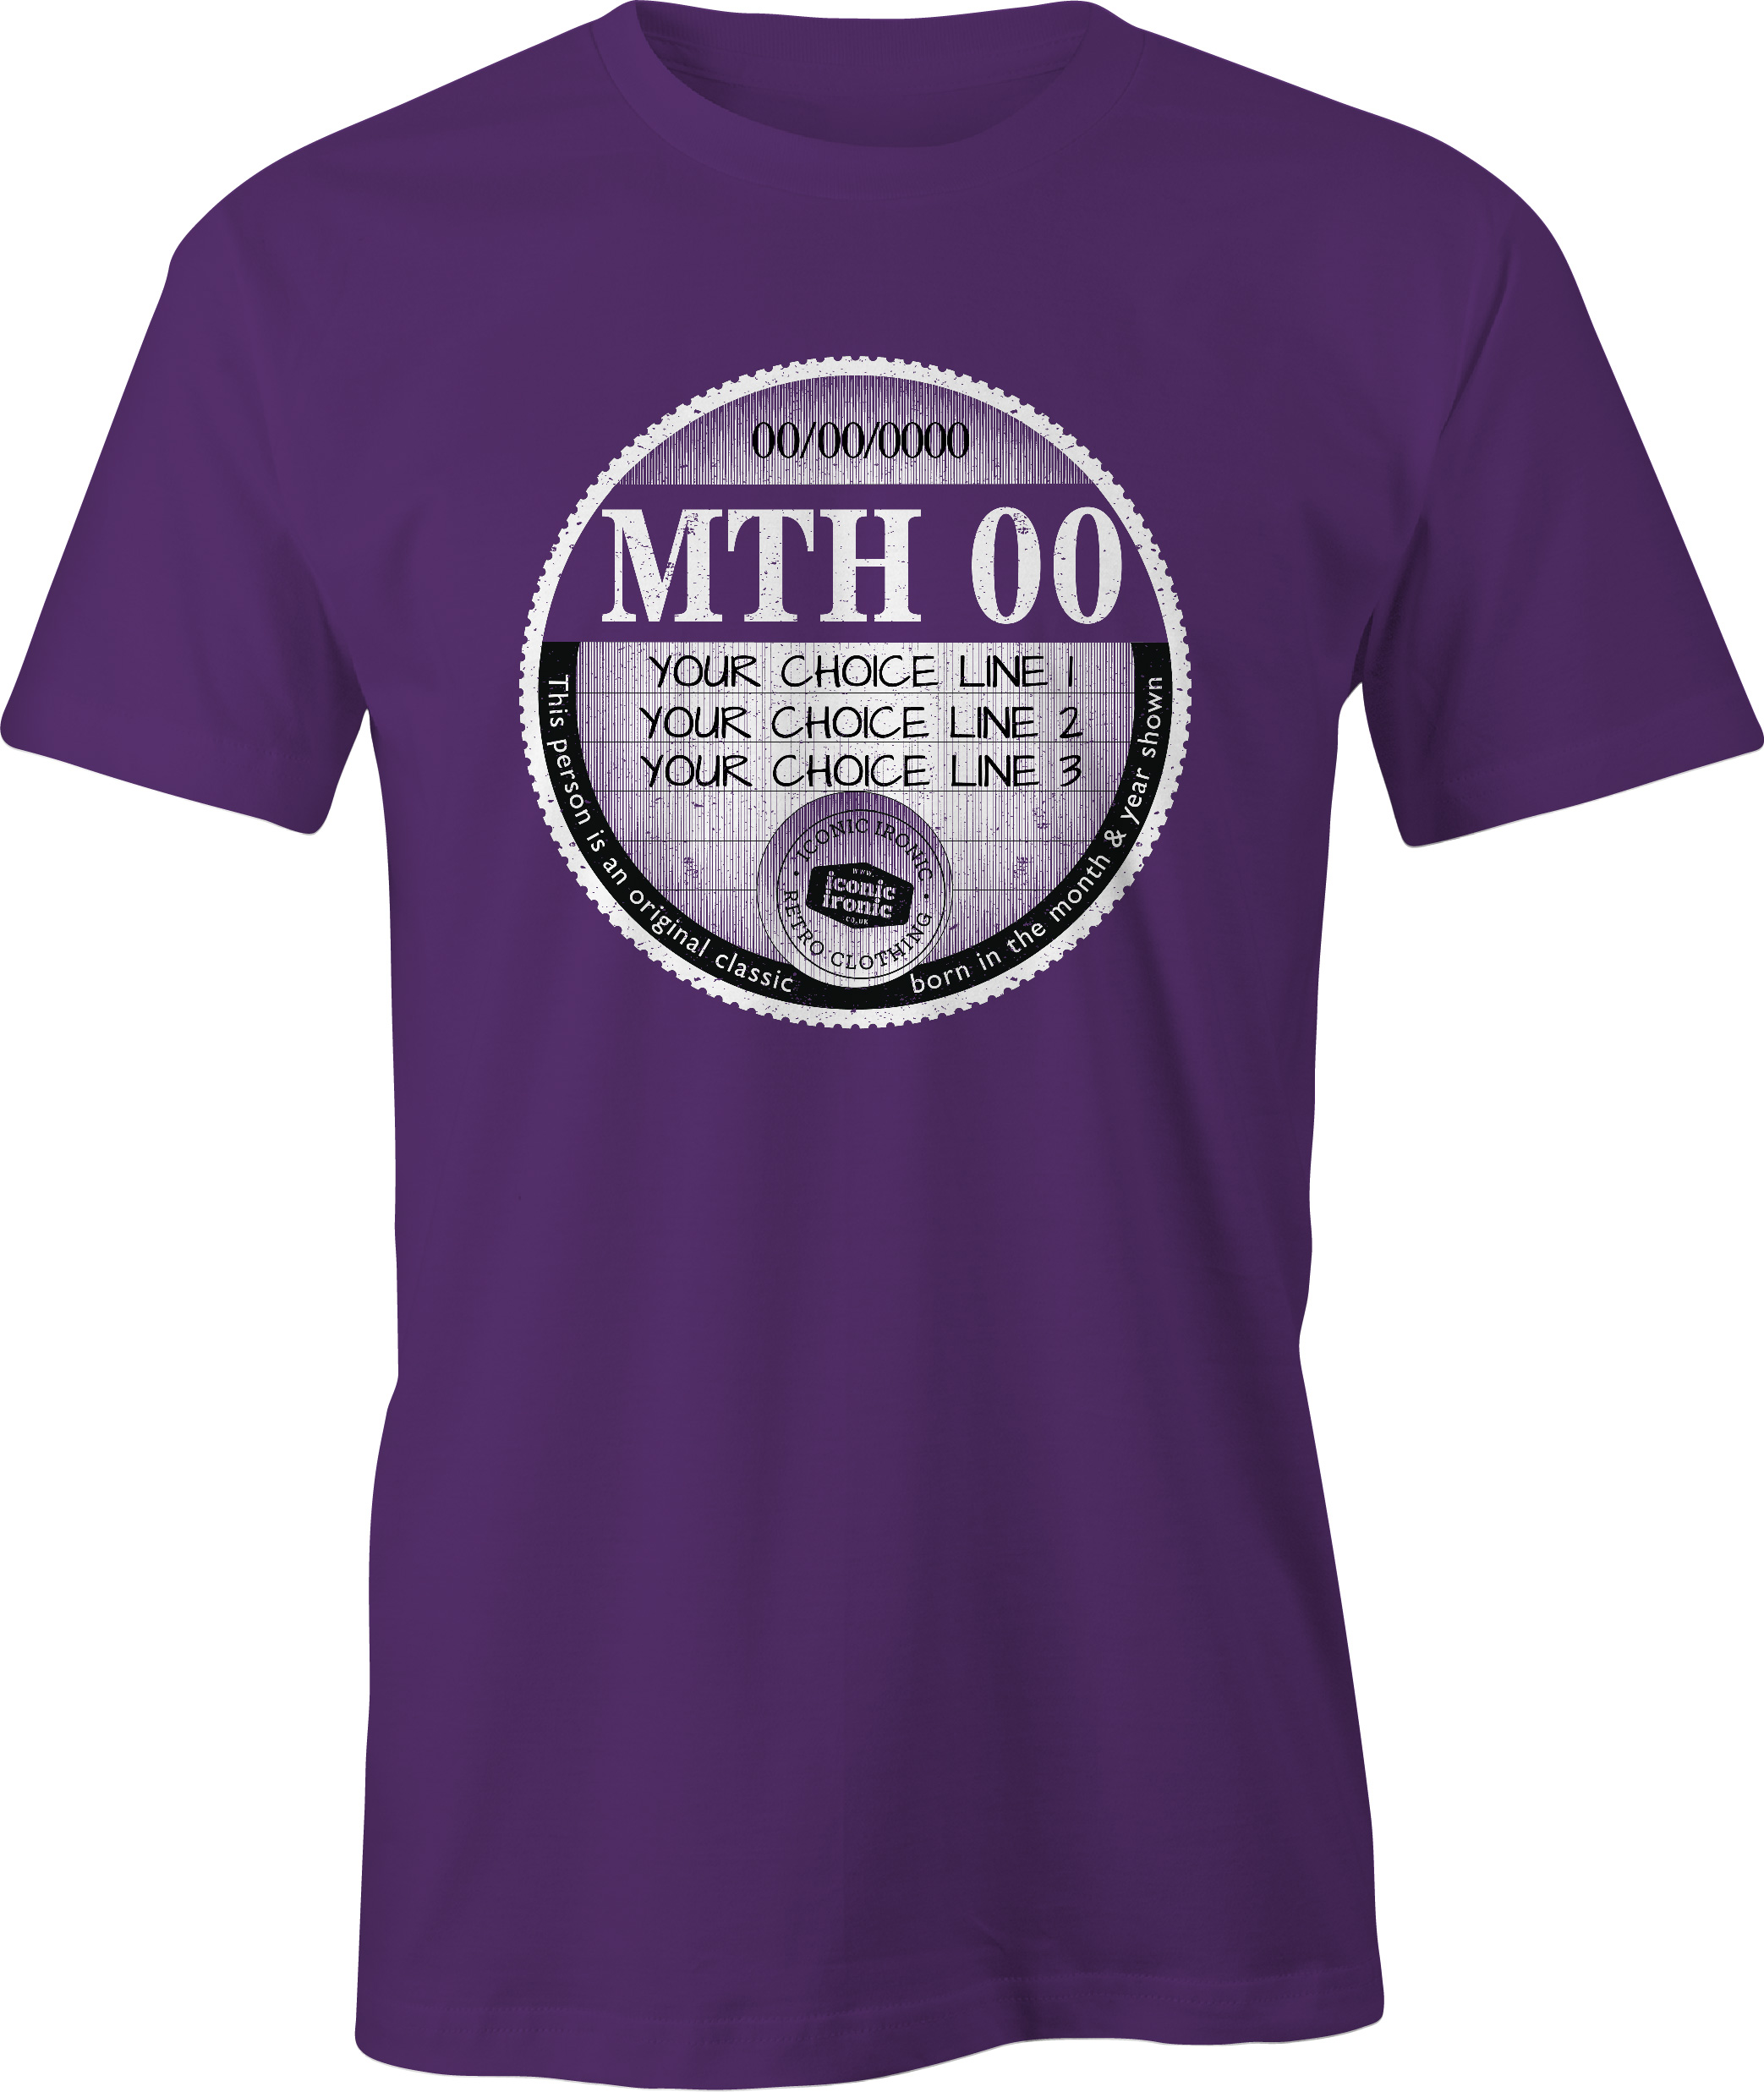 Purple car tax t-shirt with large graphic